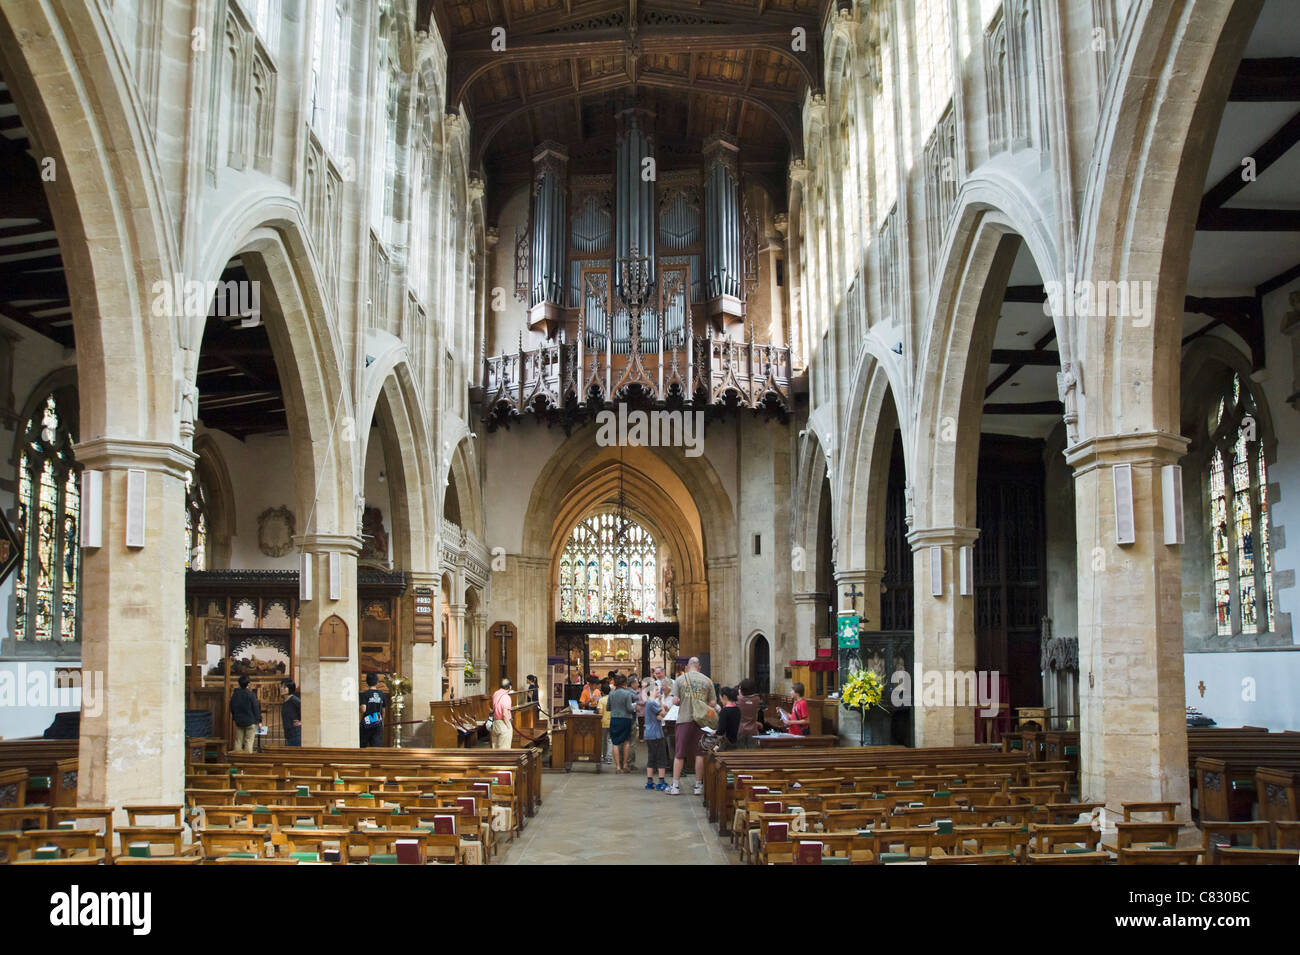 Interior of the Church of the Holy Trinity (where William Shakespeare is buried), Stratford-upon-Avon, Warwickshire, - Stock Image